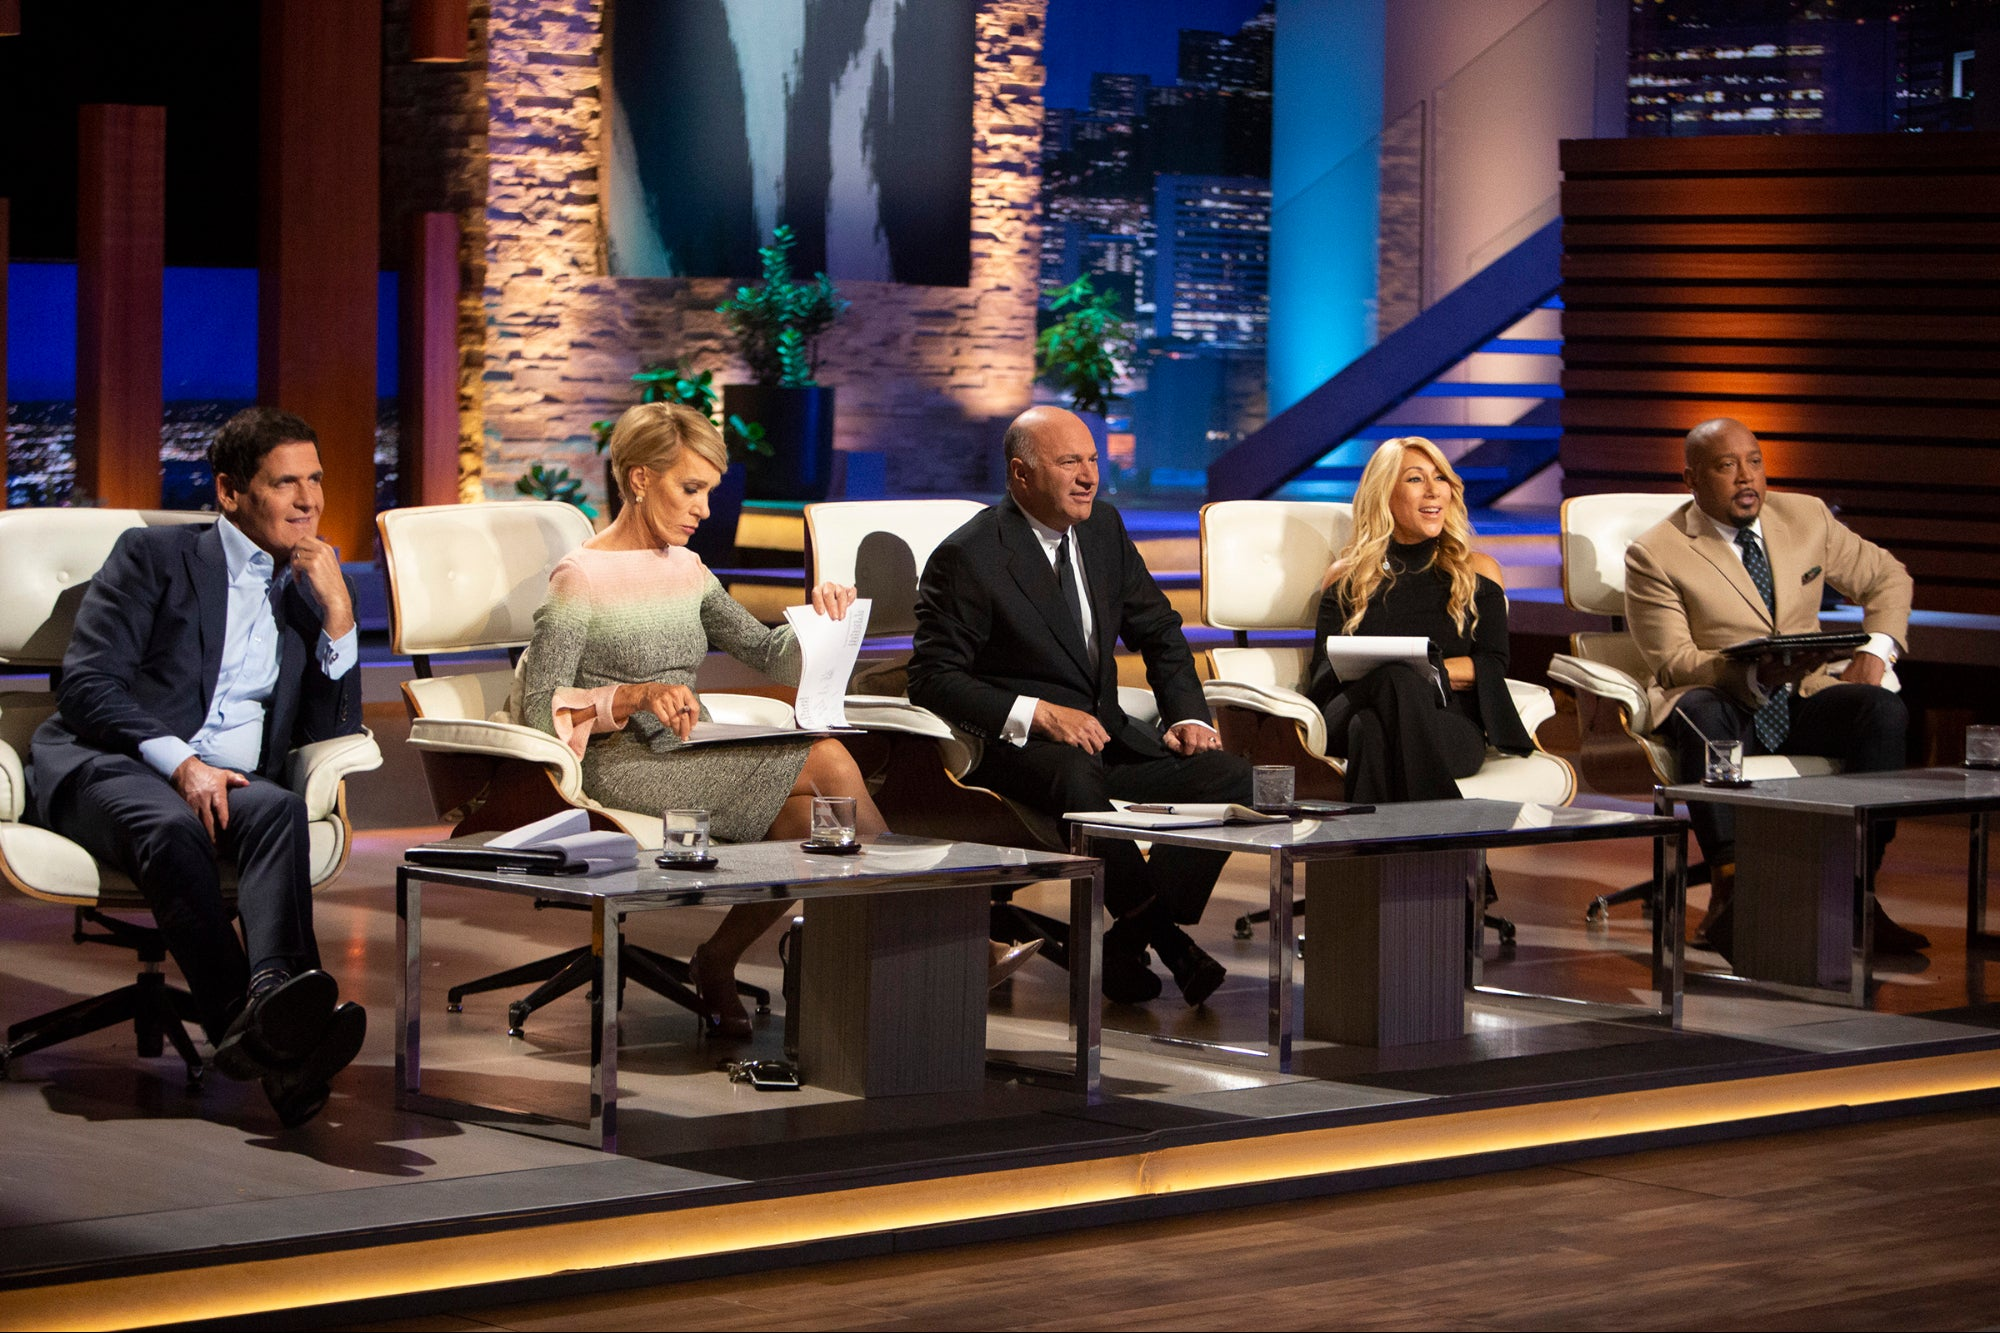 Painful Lessons for Getting an Investment Deal on 'Shark Tank'